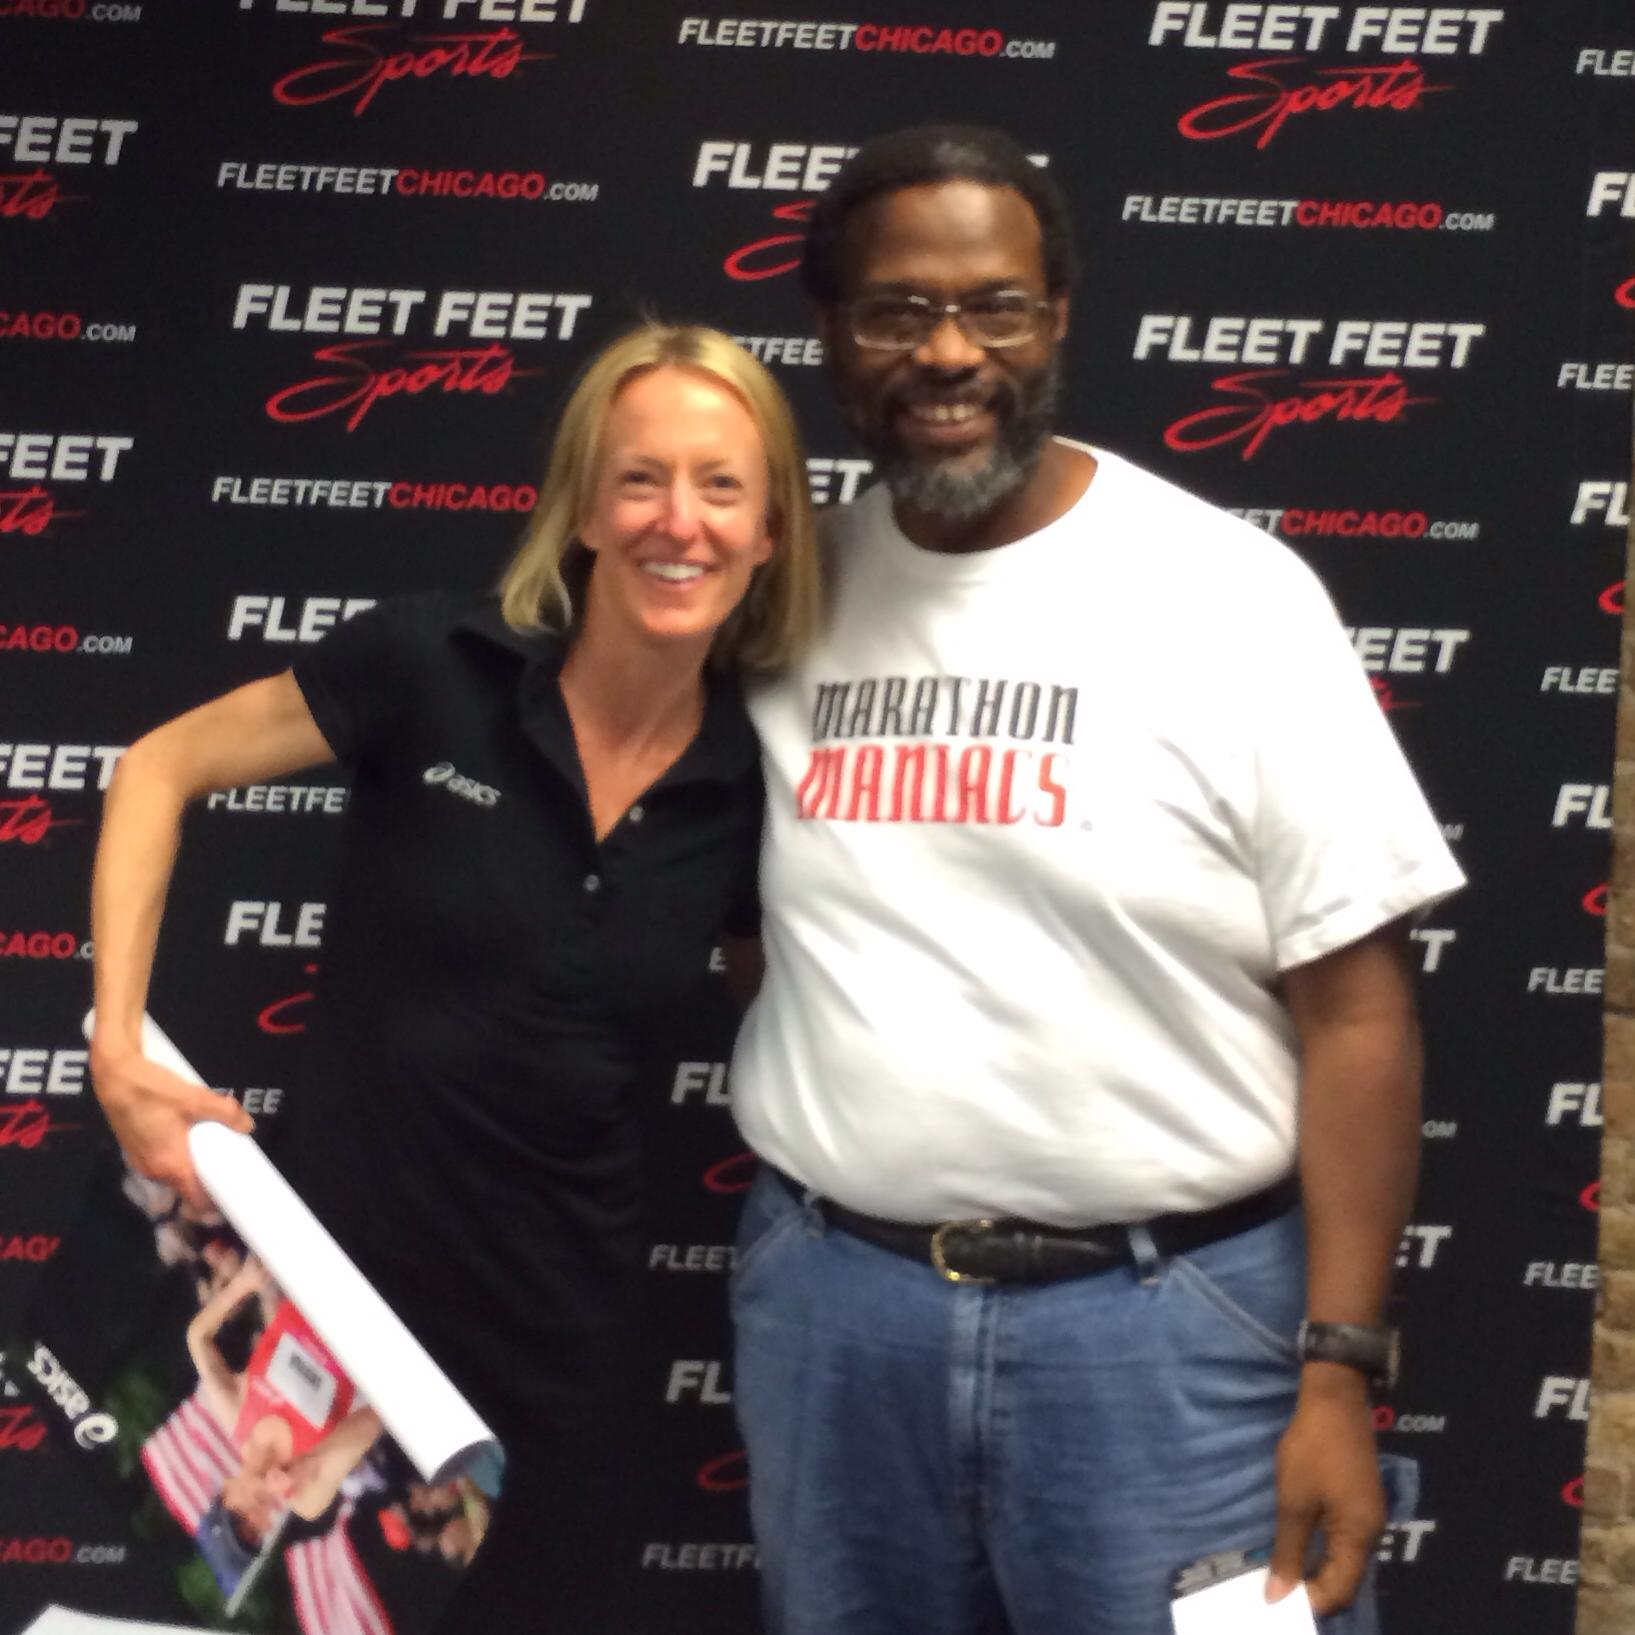 Deena Kastor and I at a meet-up in 2013